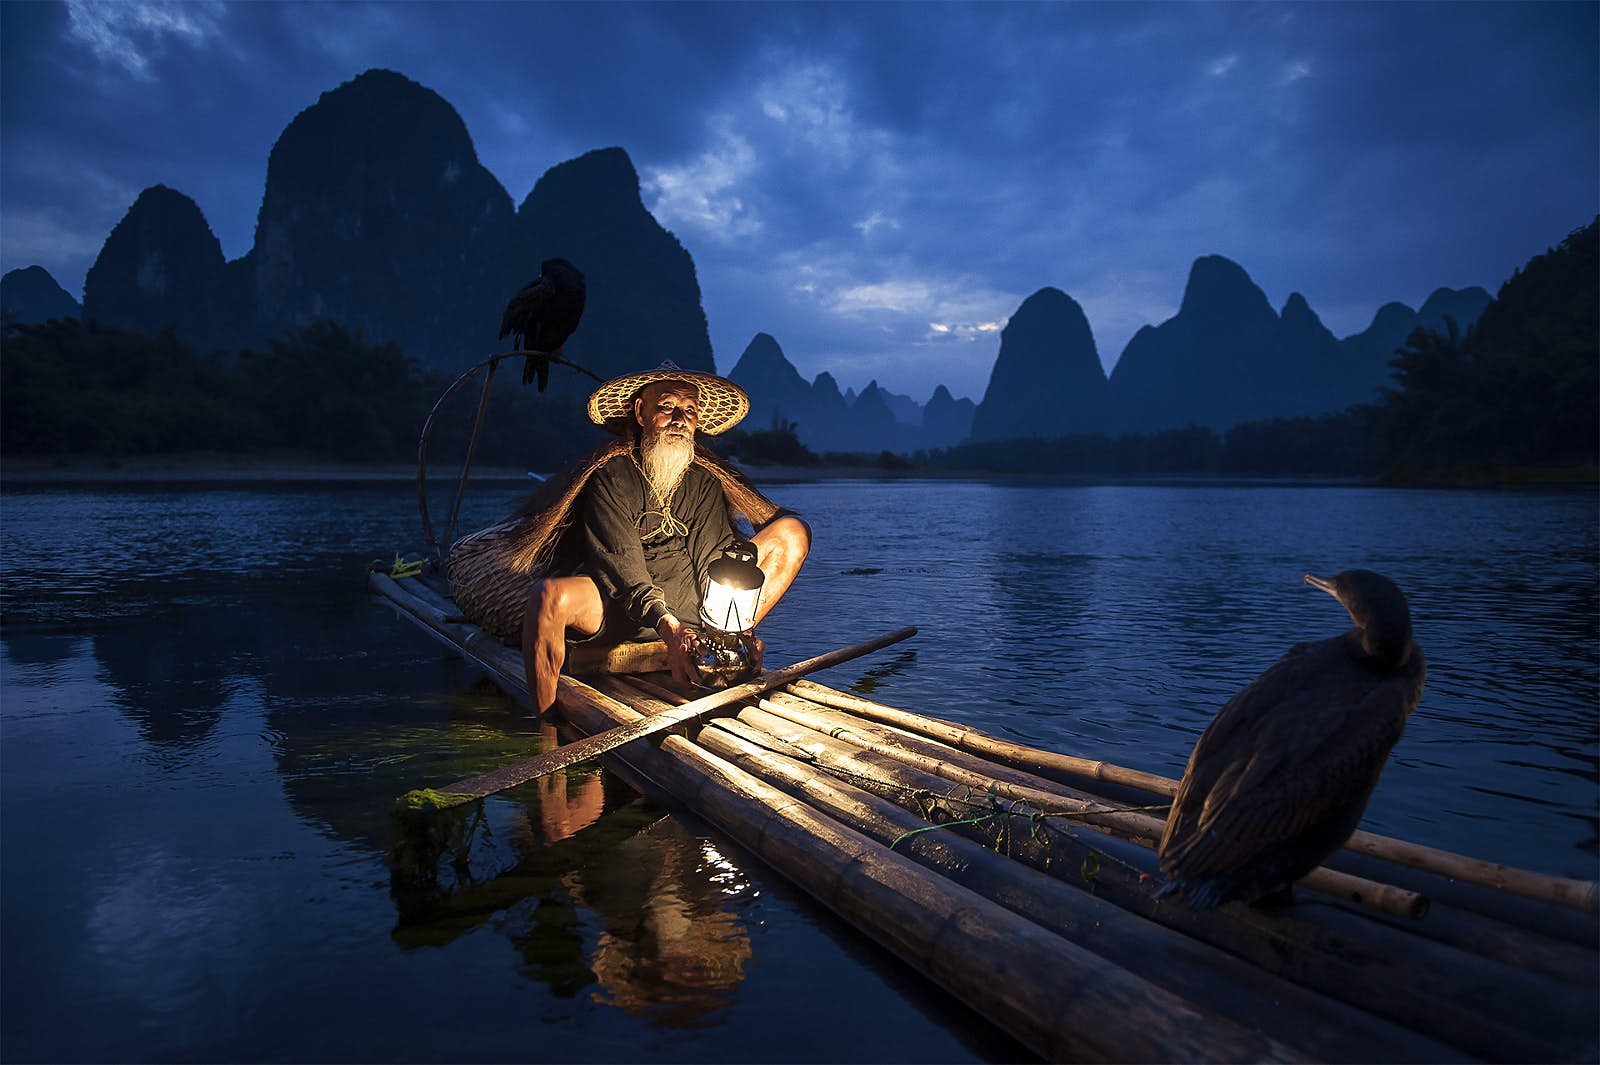 A boatman in Guilin, China; he sits in his long traditional boat made from tree branches at night, with a lantern illuminating him; he wears a wide-brimmed hat. There is a bird of prey sat at oneend of the vessel while in the background are a stretch of water and dramatic karst mountains.